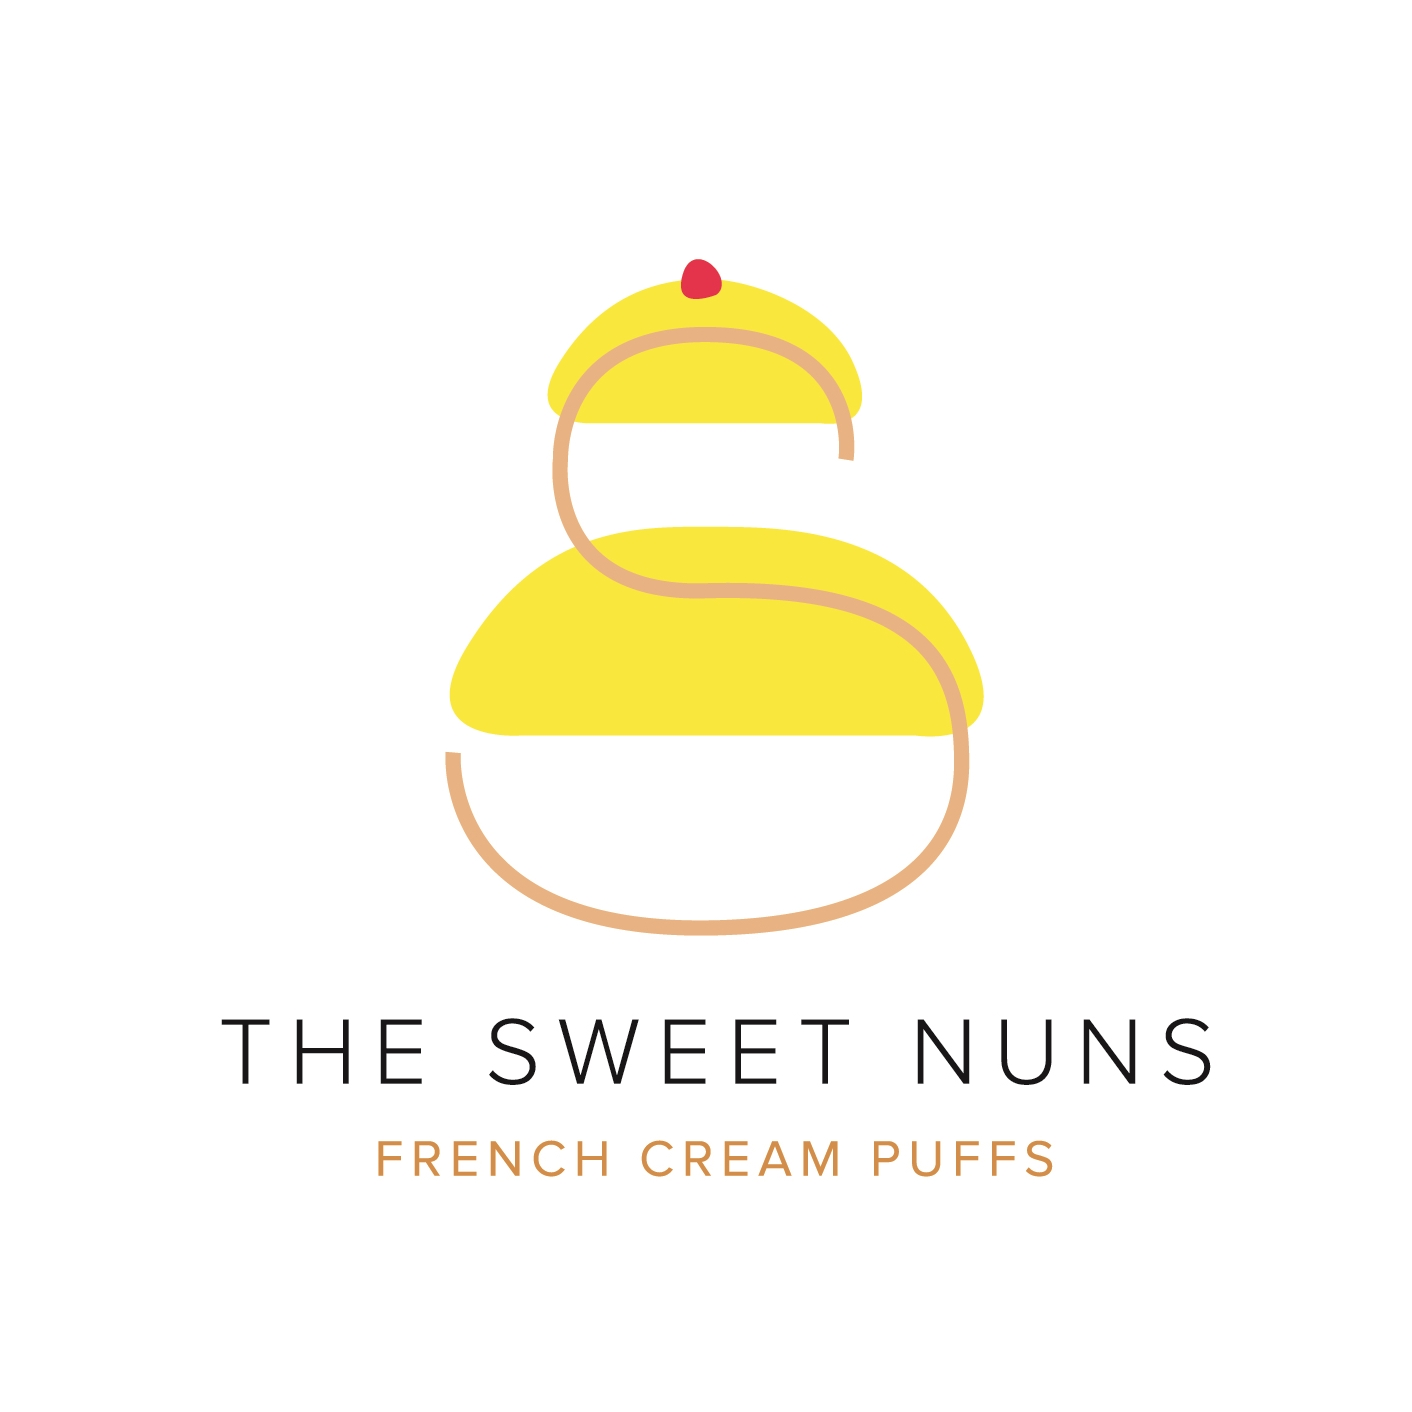 The Sweet Nuns